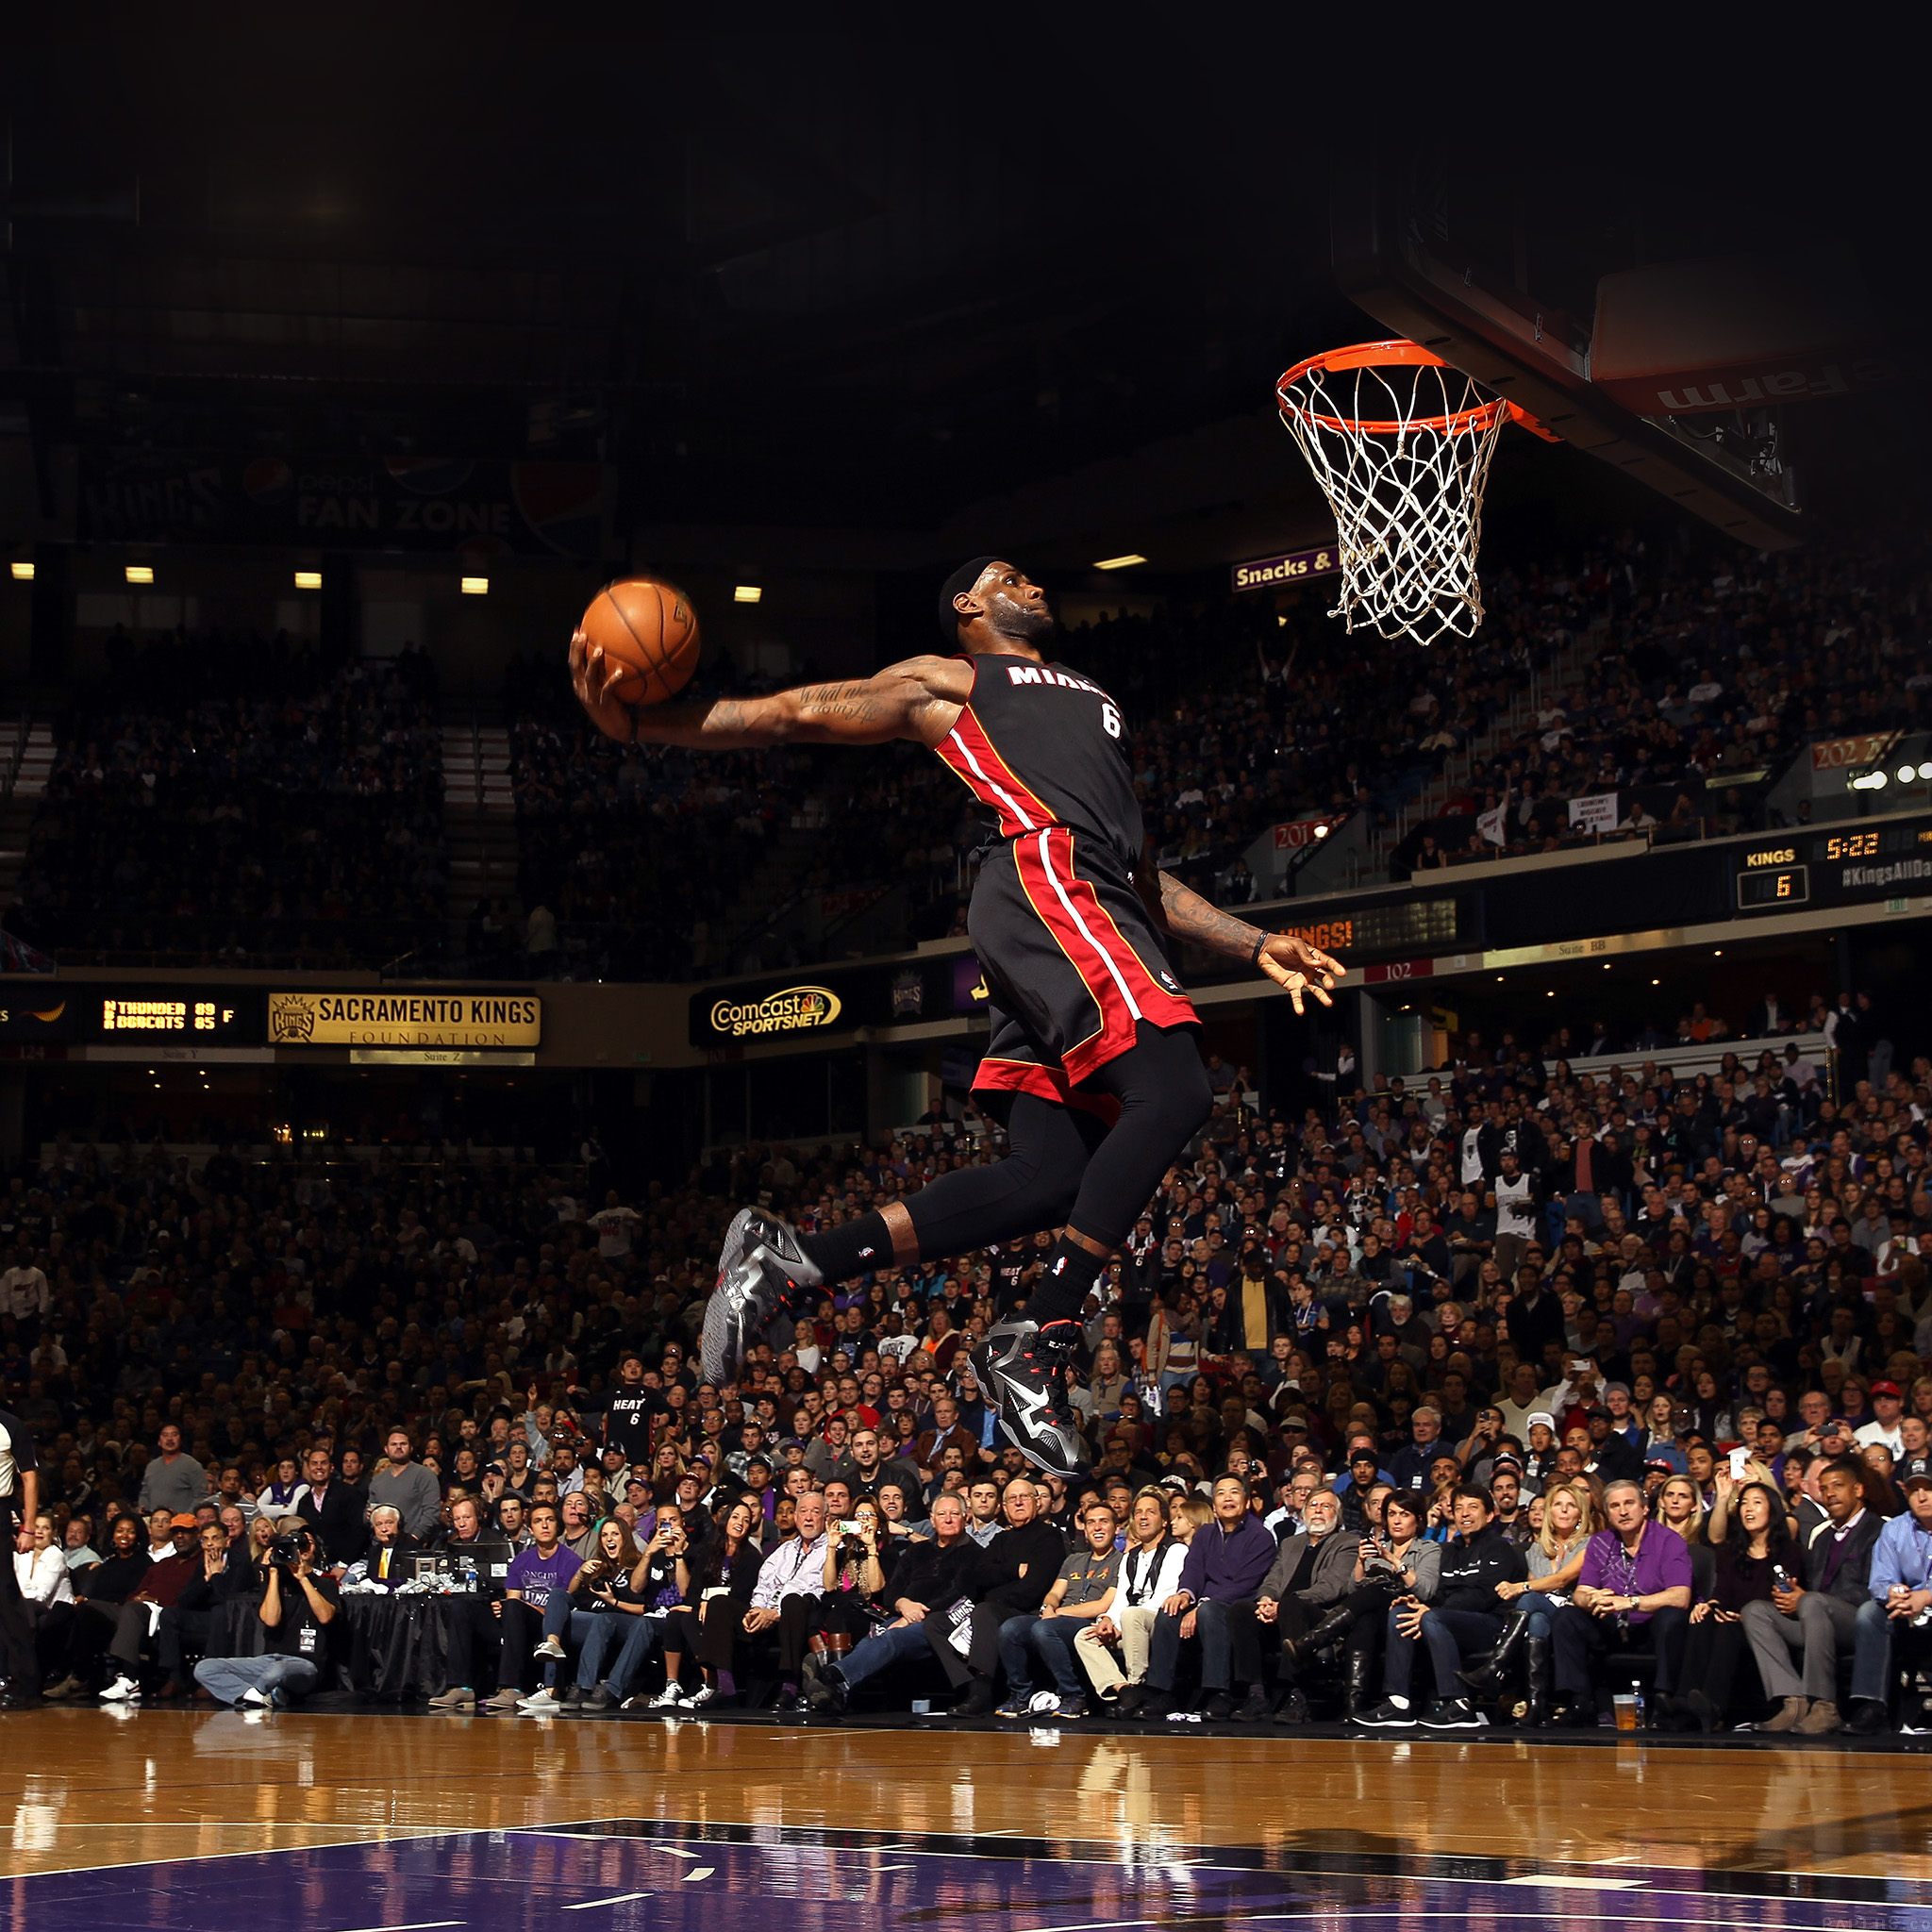 he99-lebron-james-dunk-nba-sports-art-basketball - Papers.co